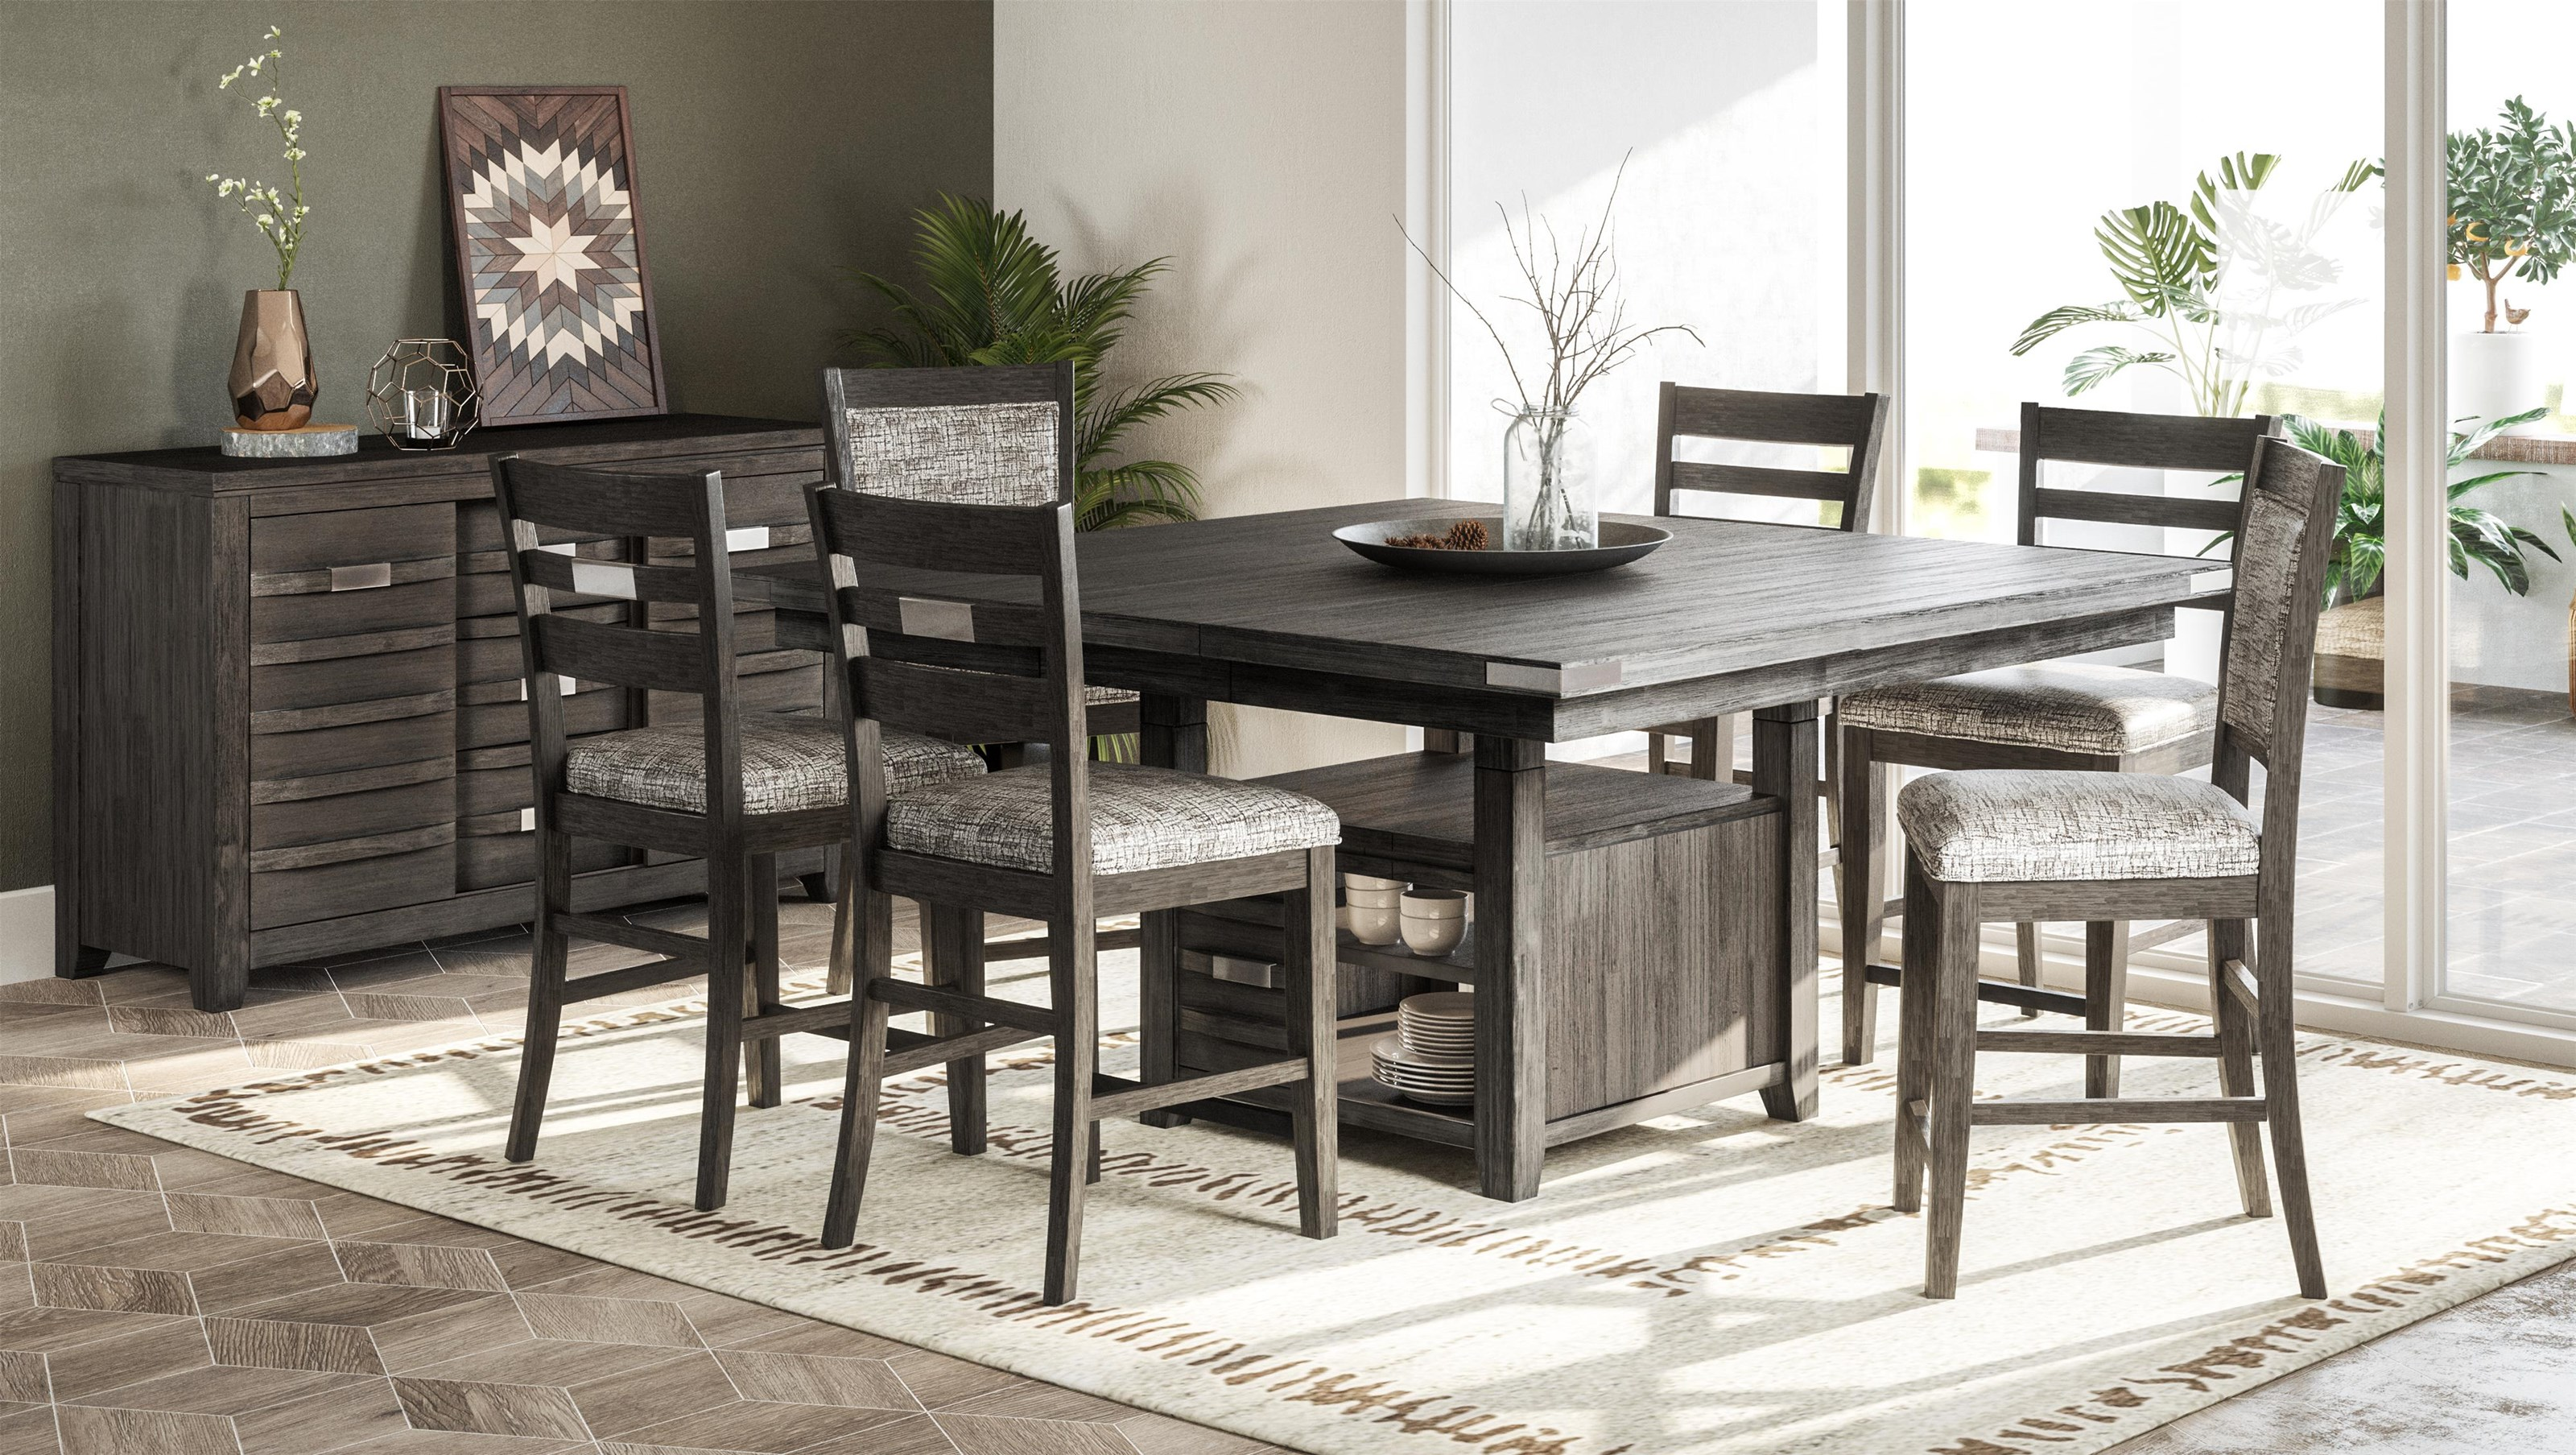 Altamonte 5 Piece Counter Height Dining Set by Jofran at Darvin Furniture